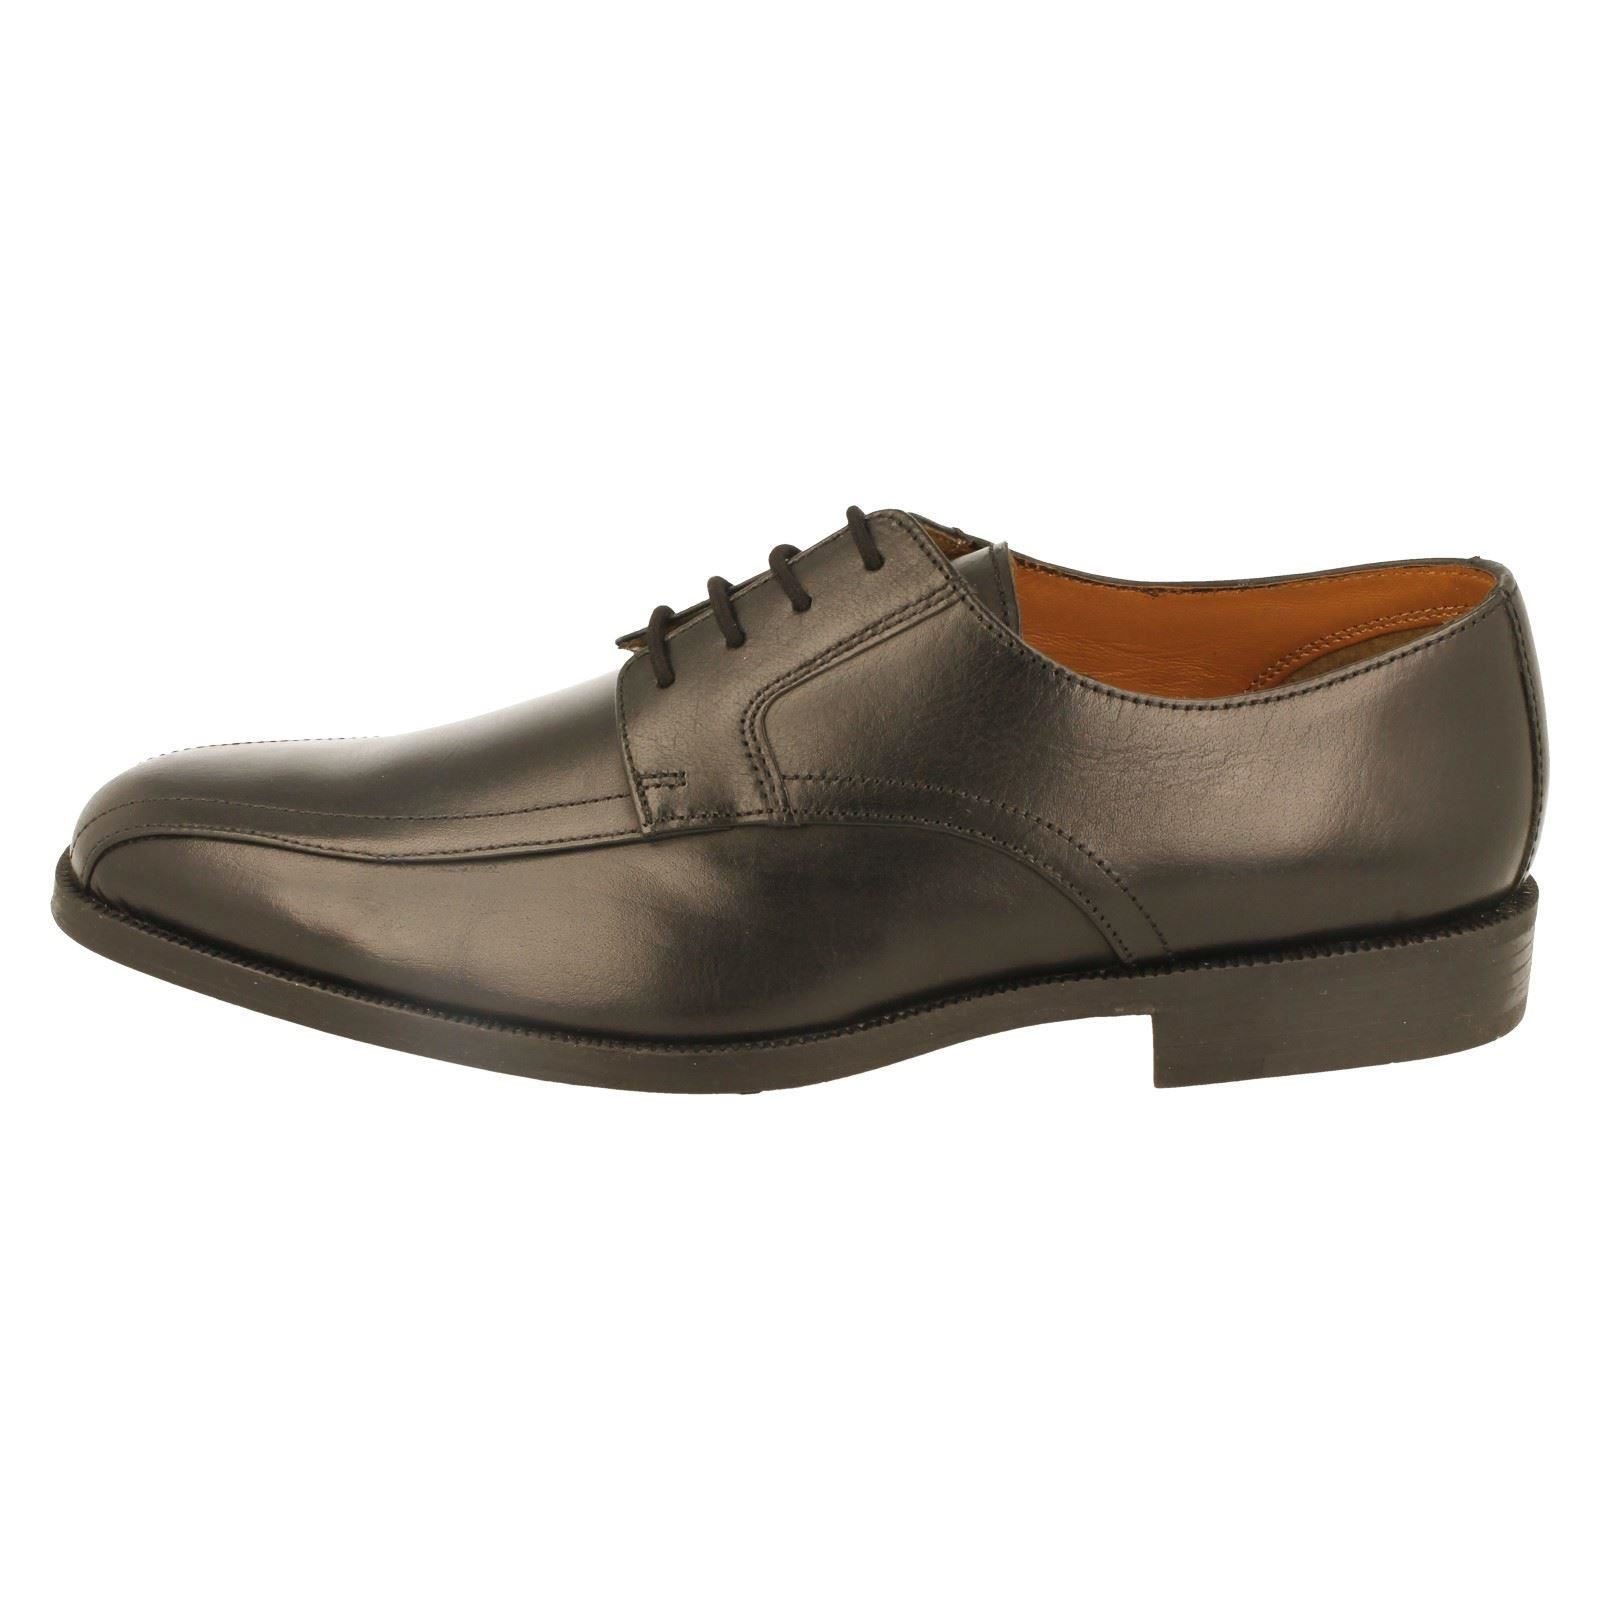 Mens Clarks Formal Lace-Up Shoes, The Style Bakra Sky -w